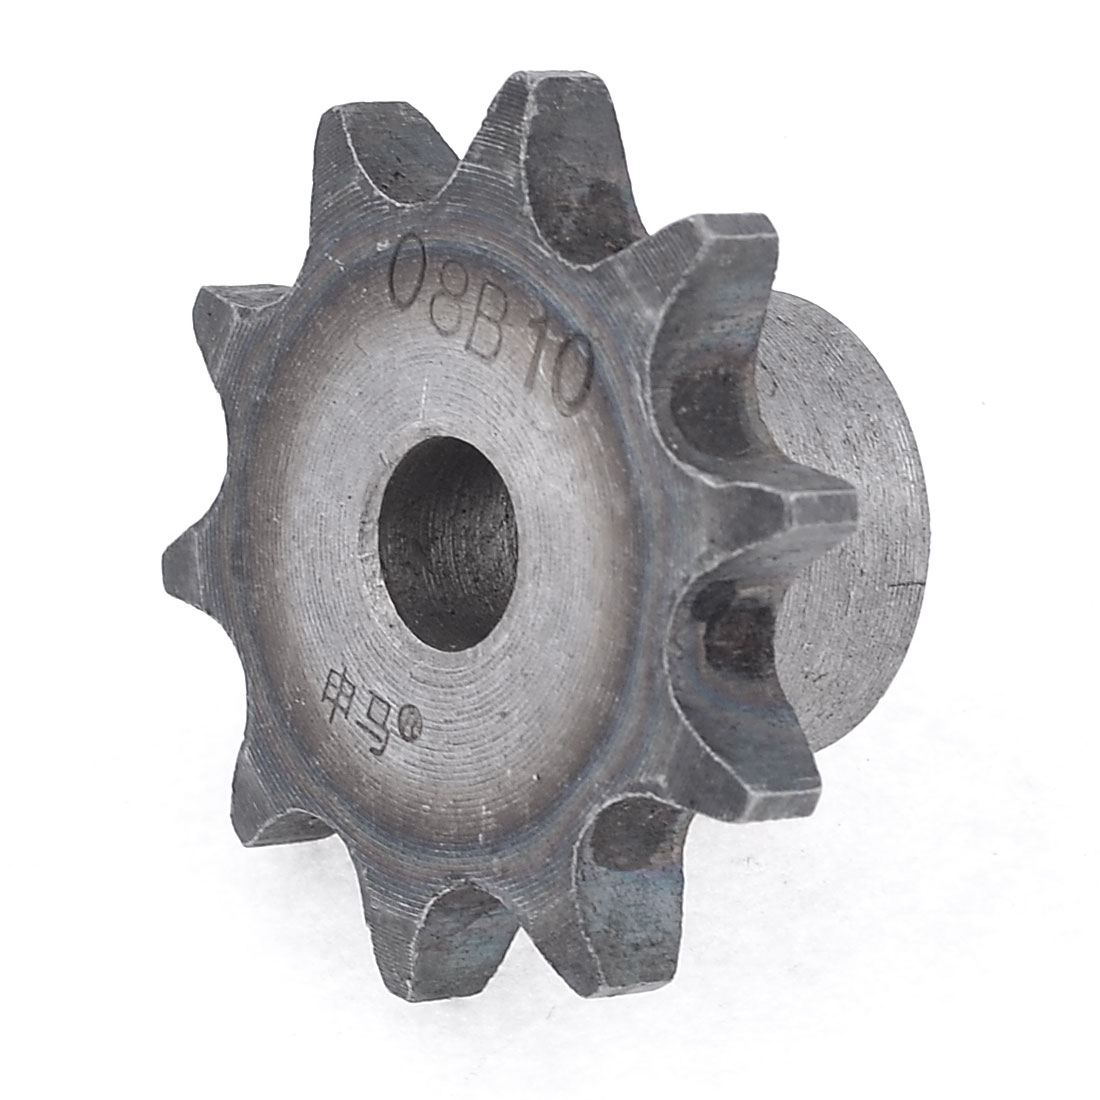 46mm x 28mm Single Row 10 Teeth Simplex Chain Drive Sprocket Silver Tone